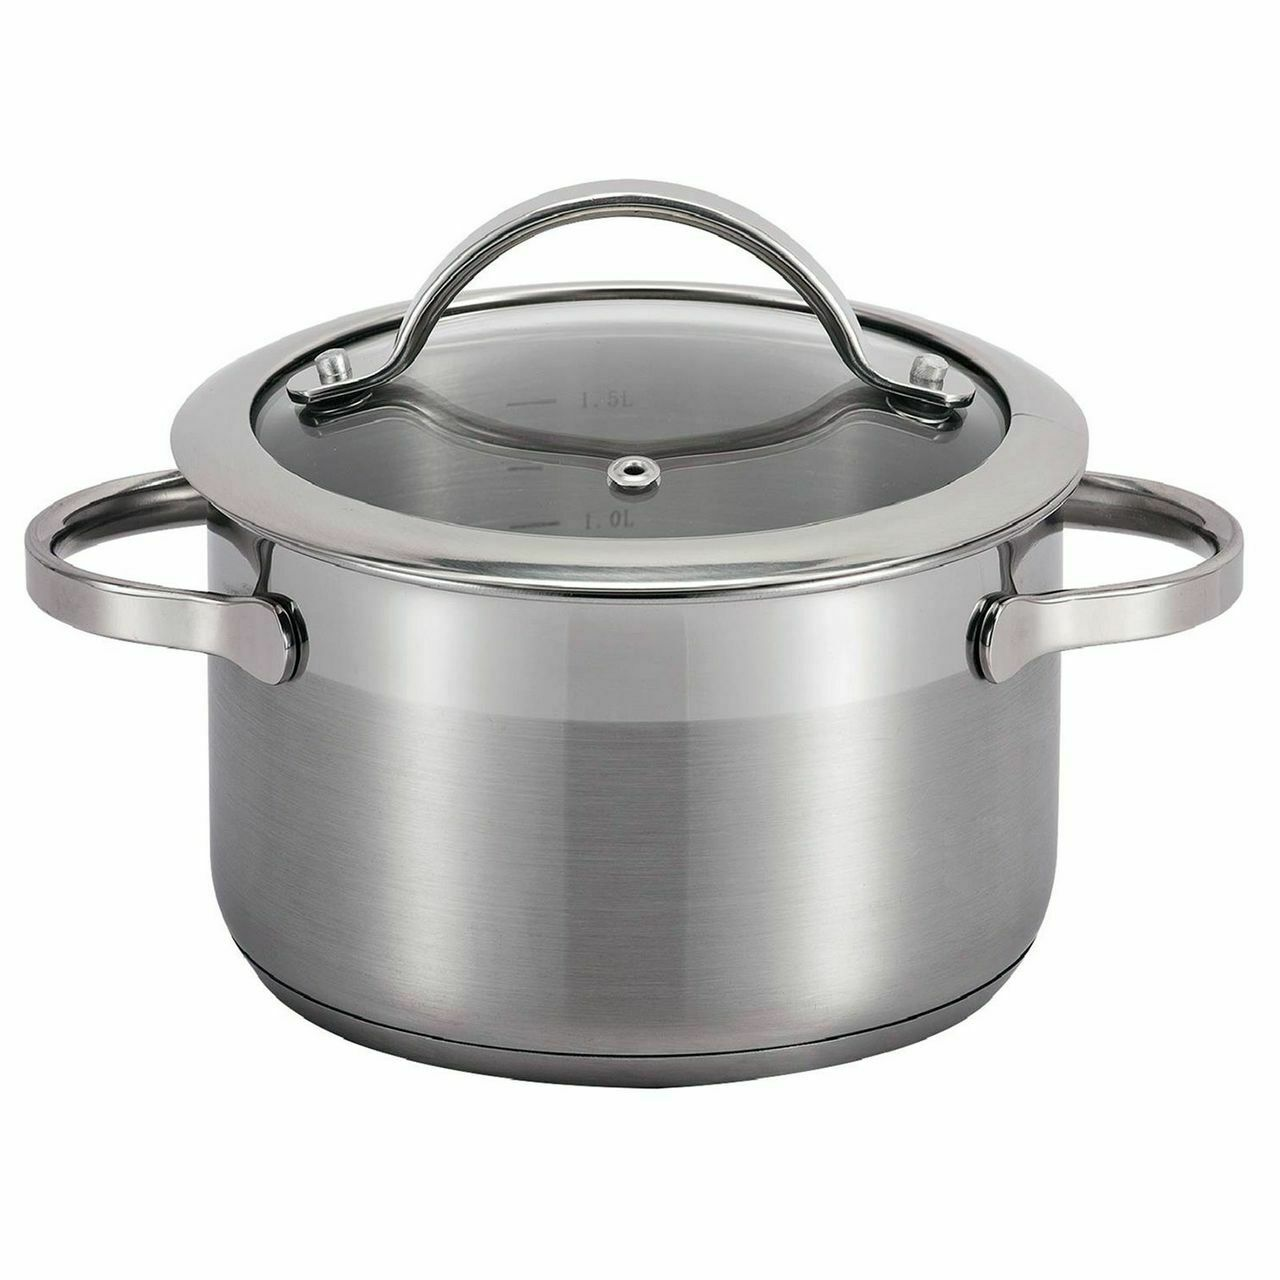 SSW Pulpo Cooking pot with Lid, Stainless steel, Ø 24 cm, 6,1 l